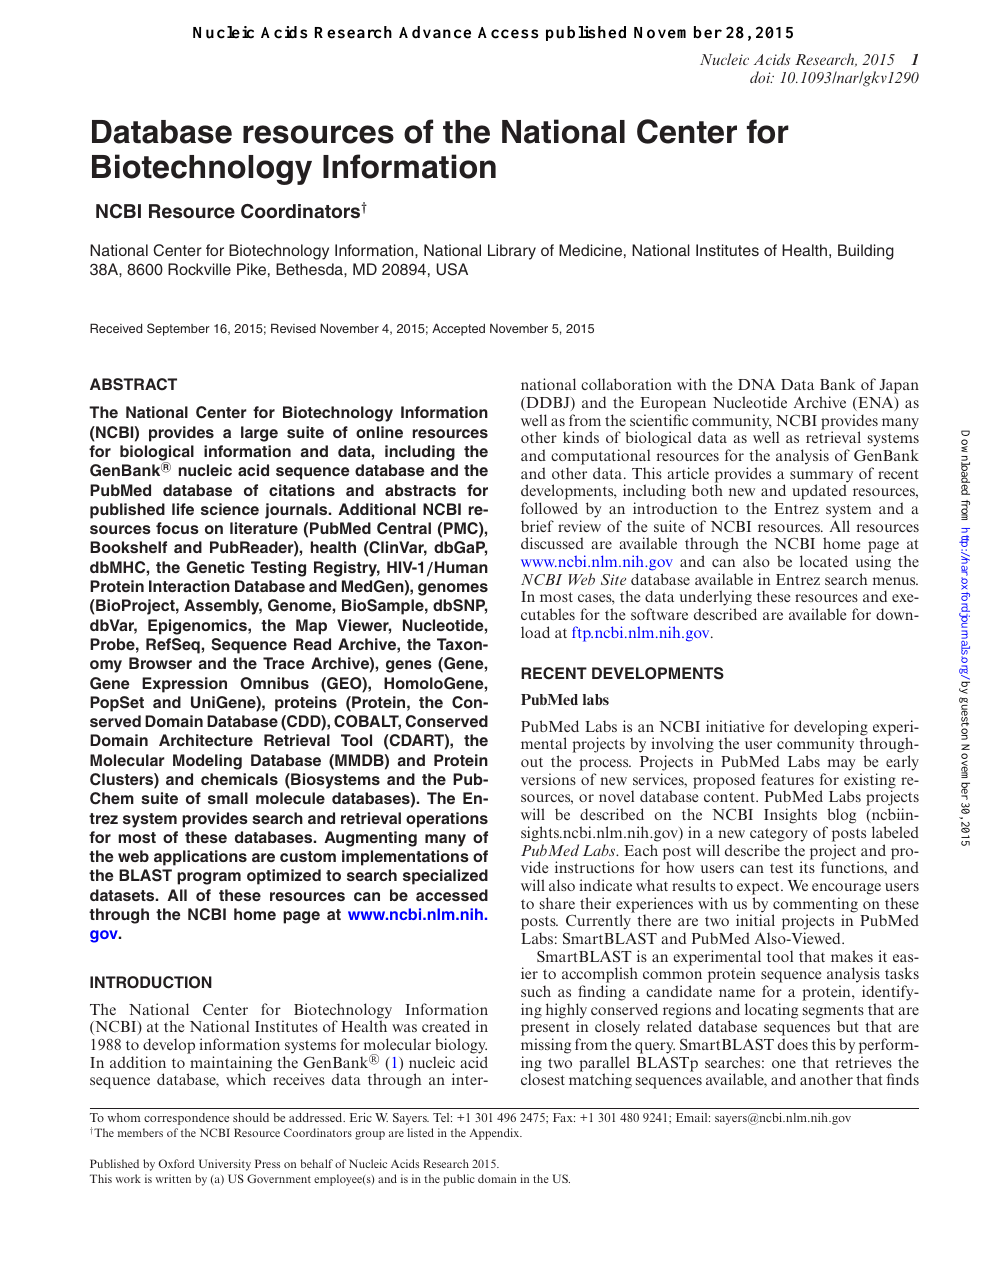 Database resources of the National Center for Biotechnology